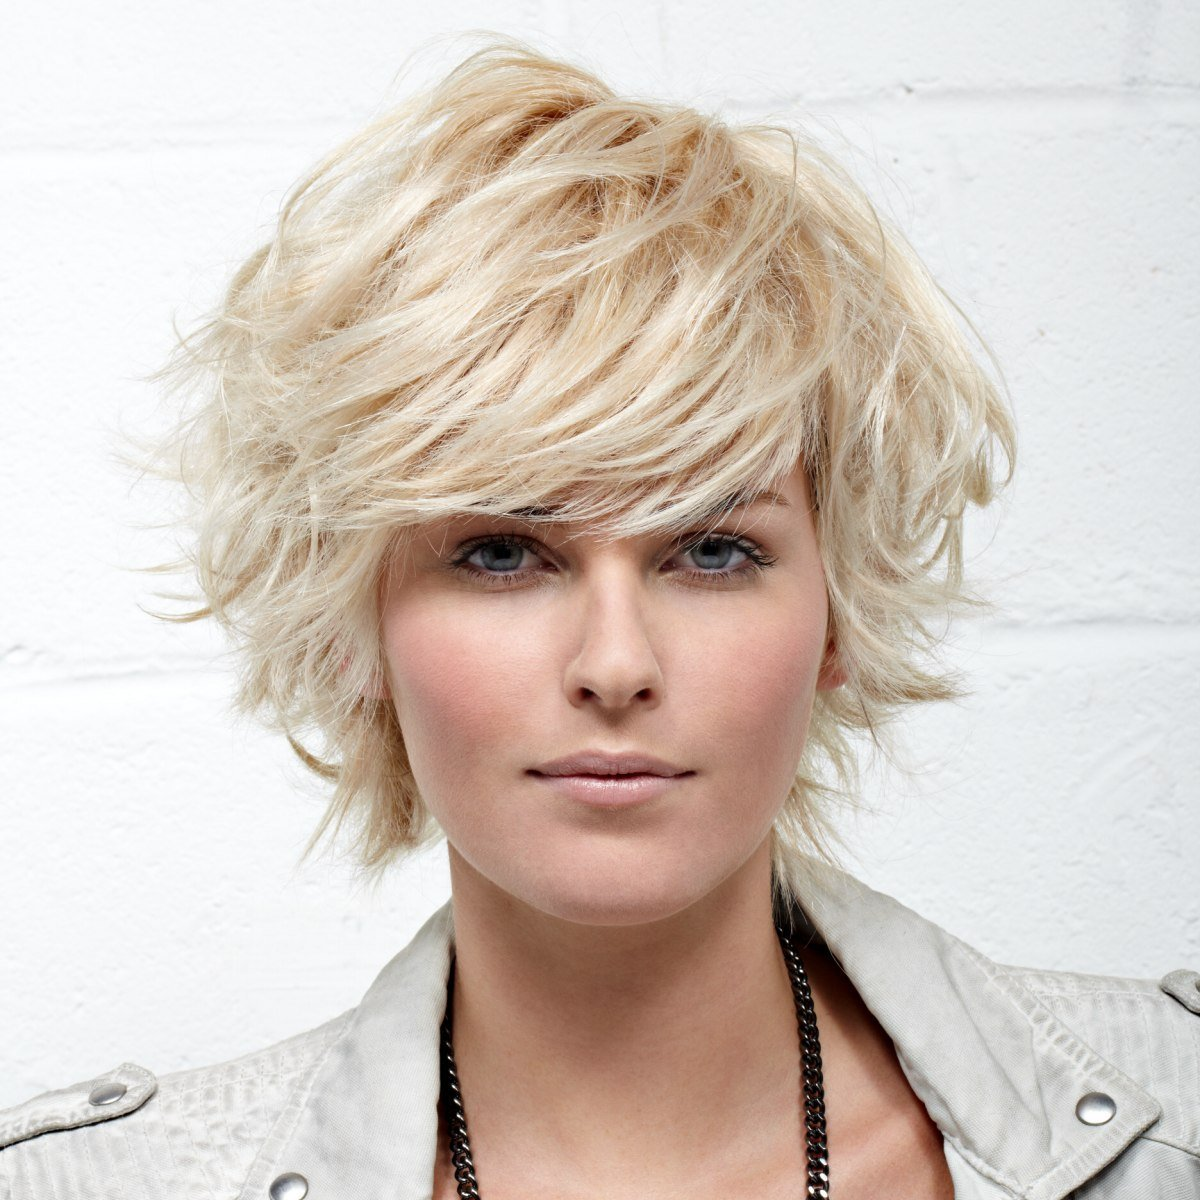 The Best Feathery Short Haircut With The Ends Flipped Up And Out Pictures